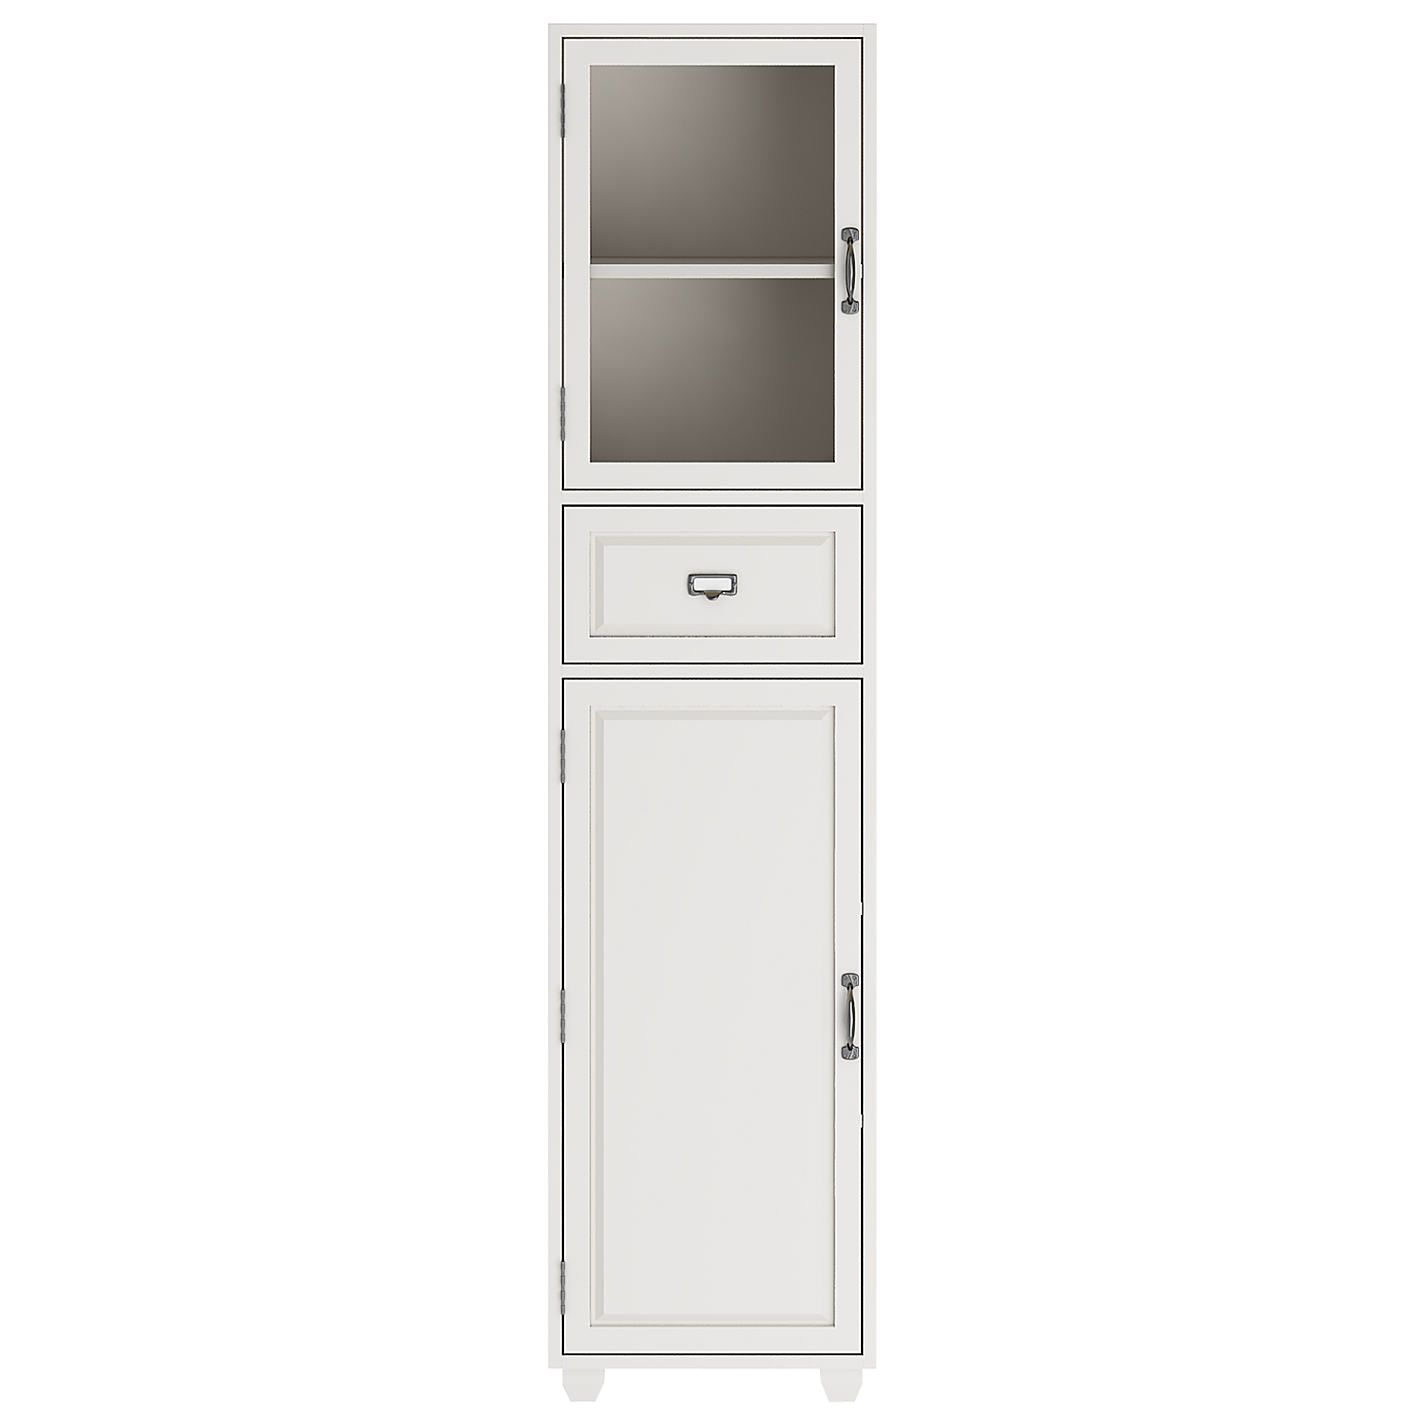 John Lewis Partners Apothecary Single Bathroom Tallboy Bathroom Tallboy Freestanding Bathroom Cabinet Fitted Bathroom Furniture